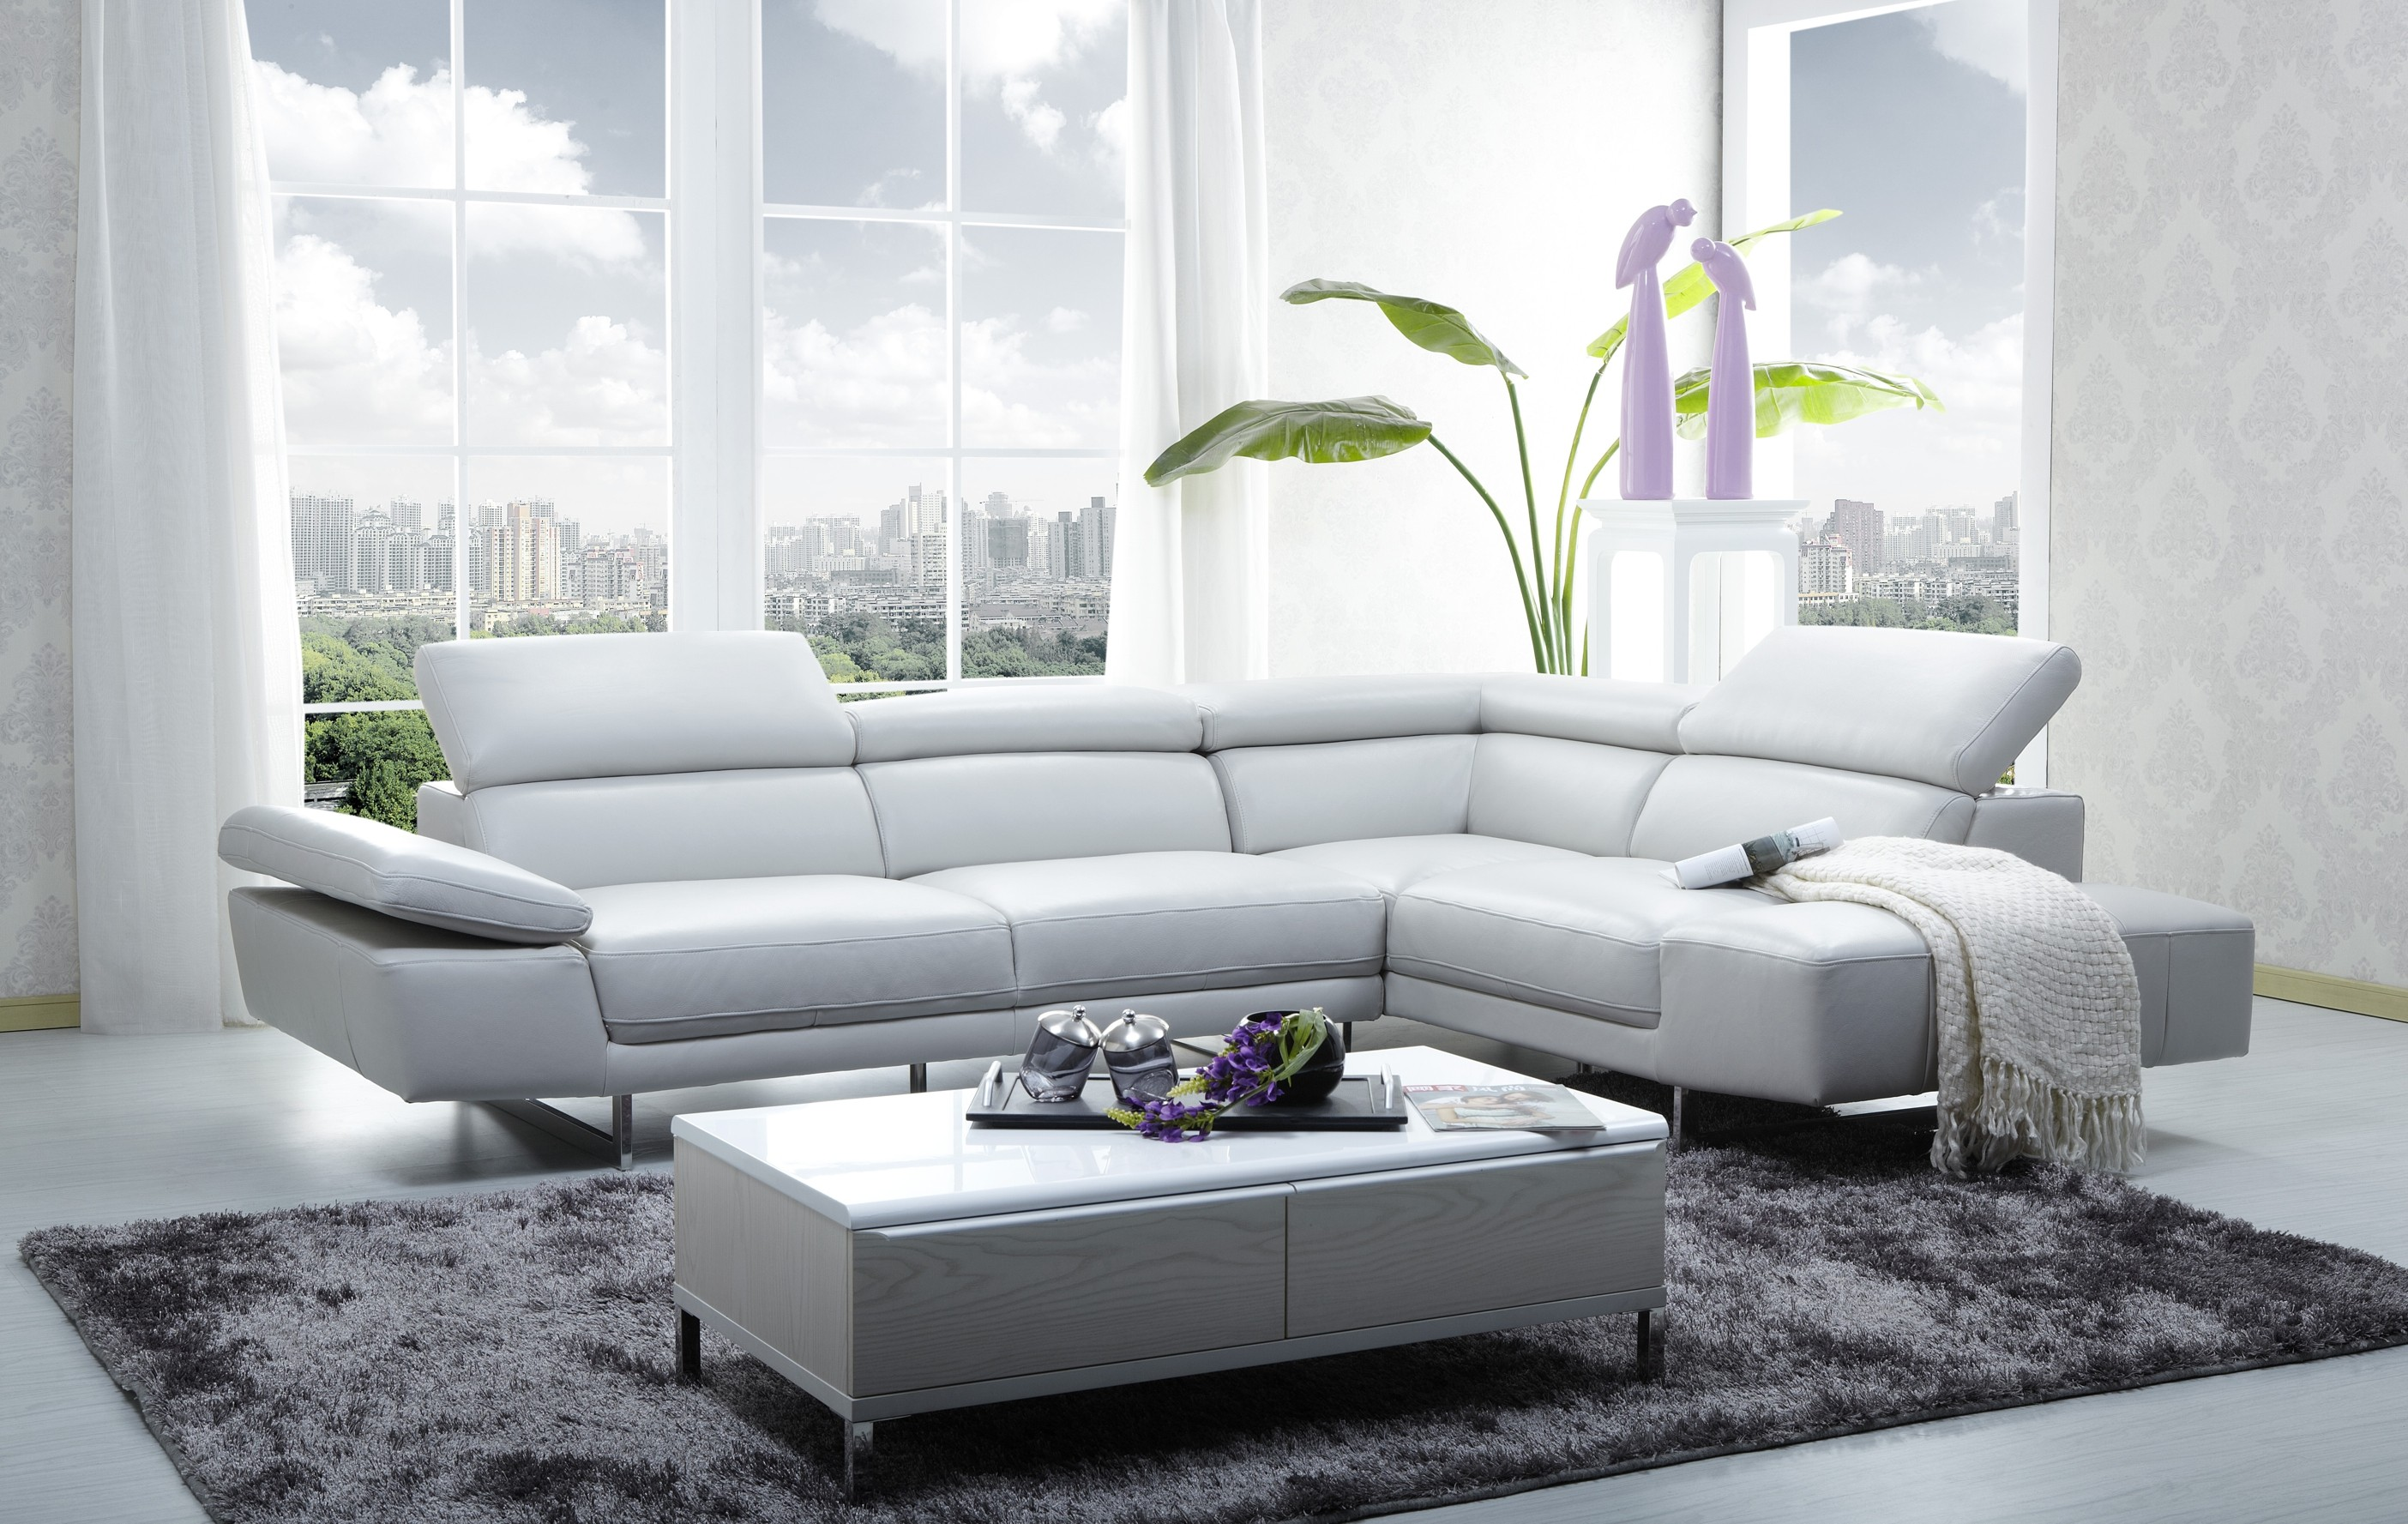 Small Apartment Design Interior With White Sectional Sofa Beds : white sectional sofa bed - Sectionals, Sofas & Couches